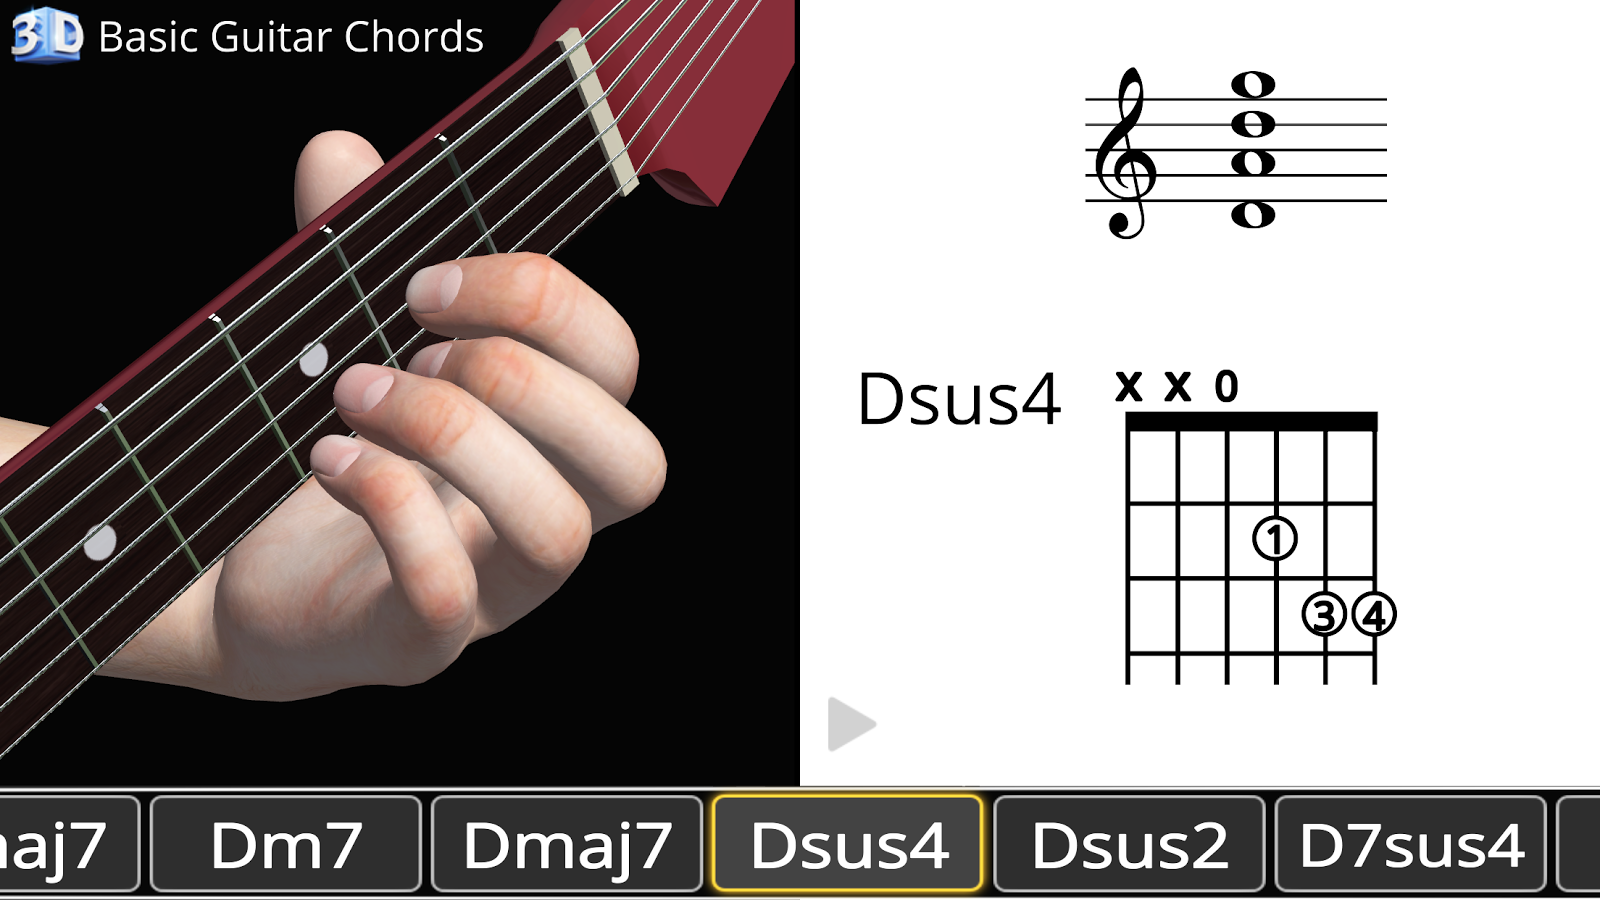 Guitar 3d Basic Chords 119 Apk Download Android Education Apps